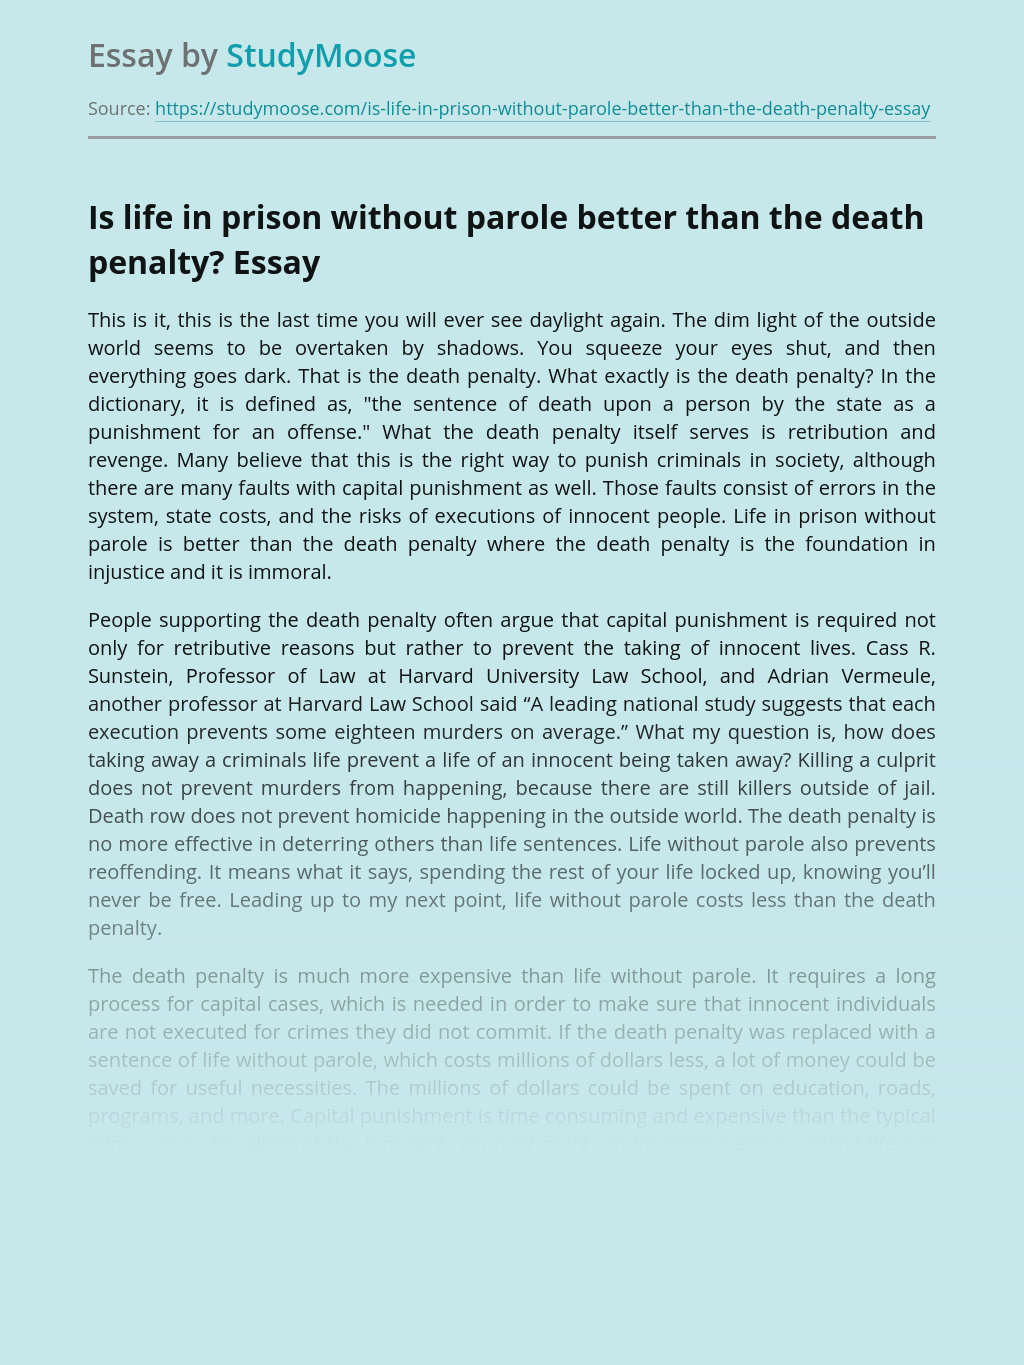 Is life in prison without parole better than the death penalty?